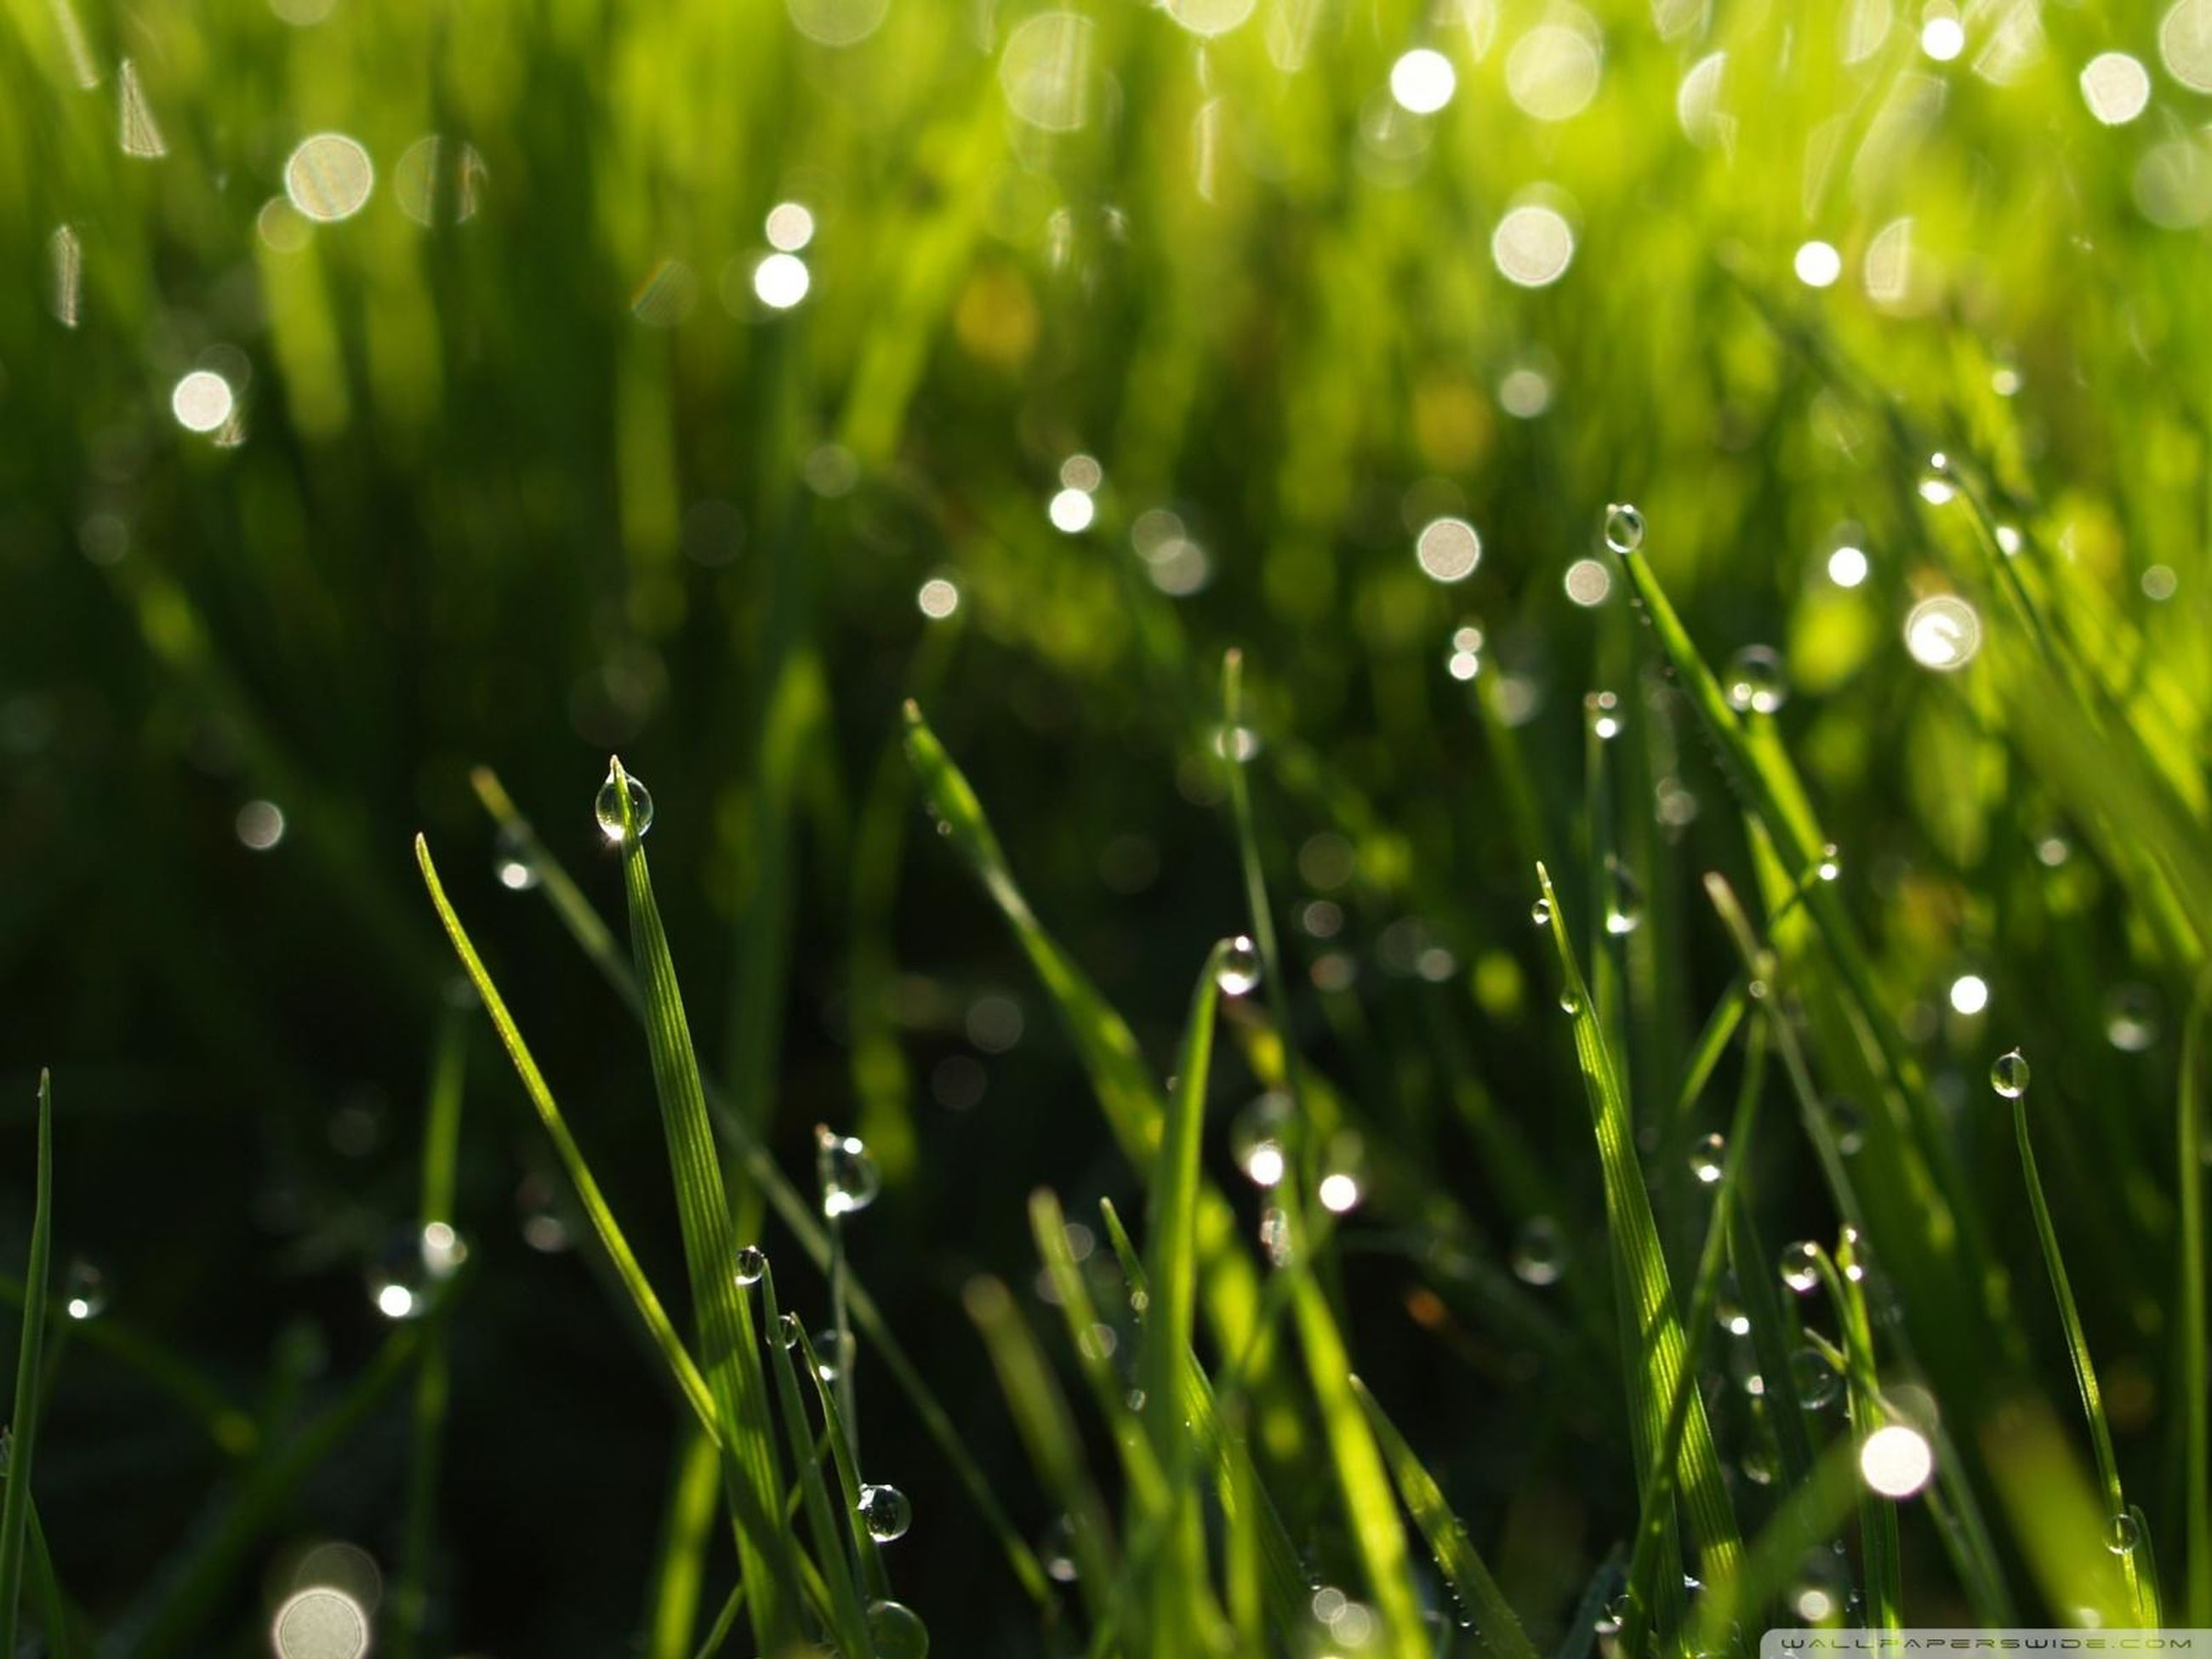 drop, water, wet, dew, growth, grass, freshness, close-up, nature, green color, rain, beauty in nature, raindrop, focus on foreground, fragility, blade of grass, purity, plant, selective focus, water drop